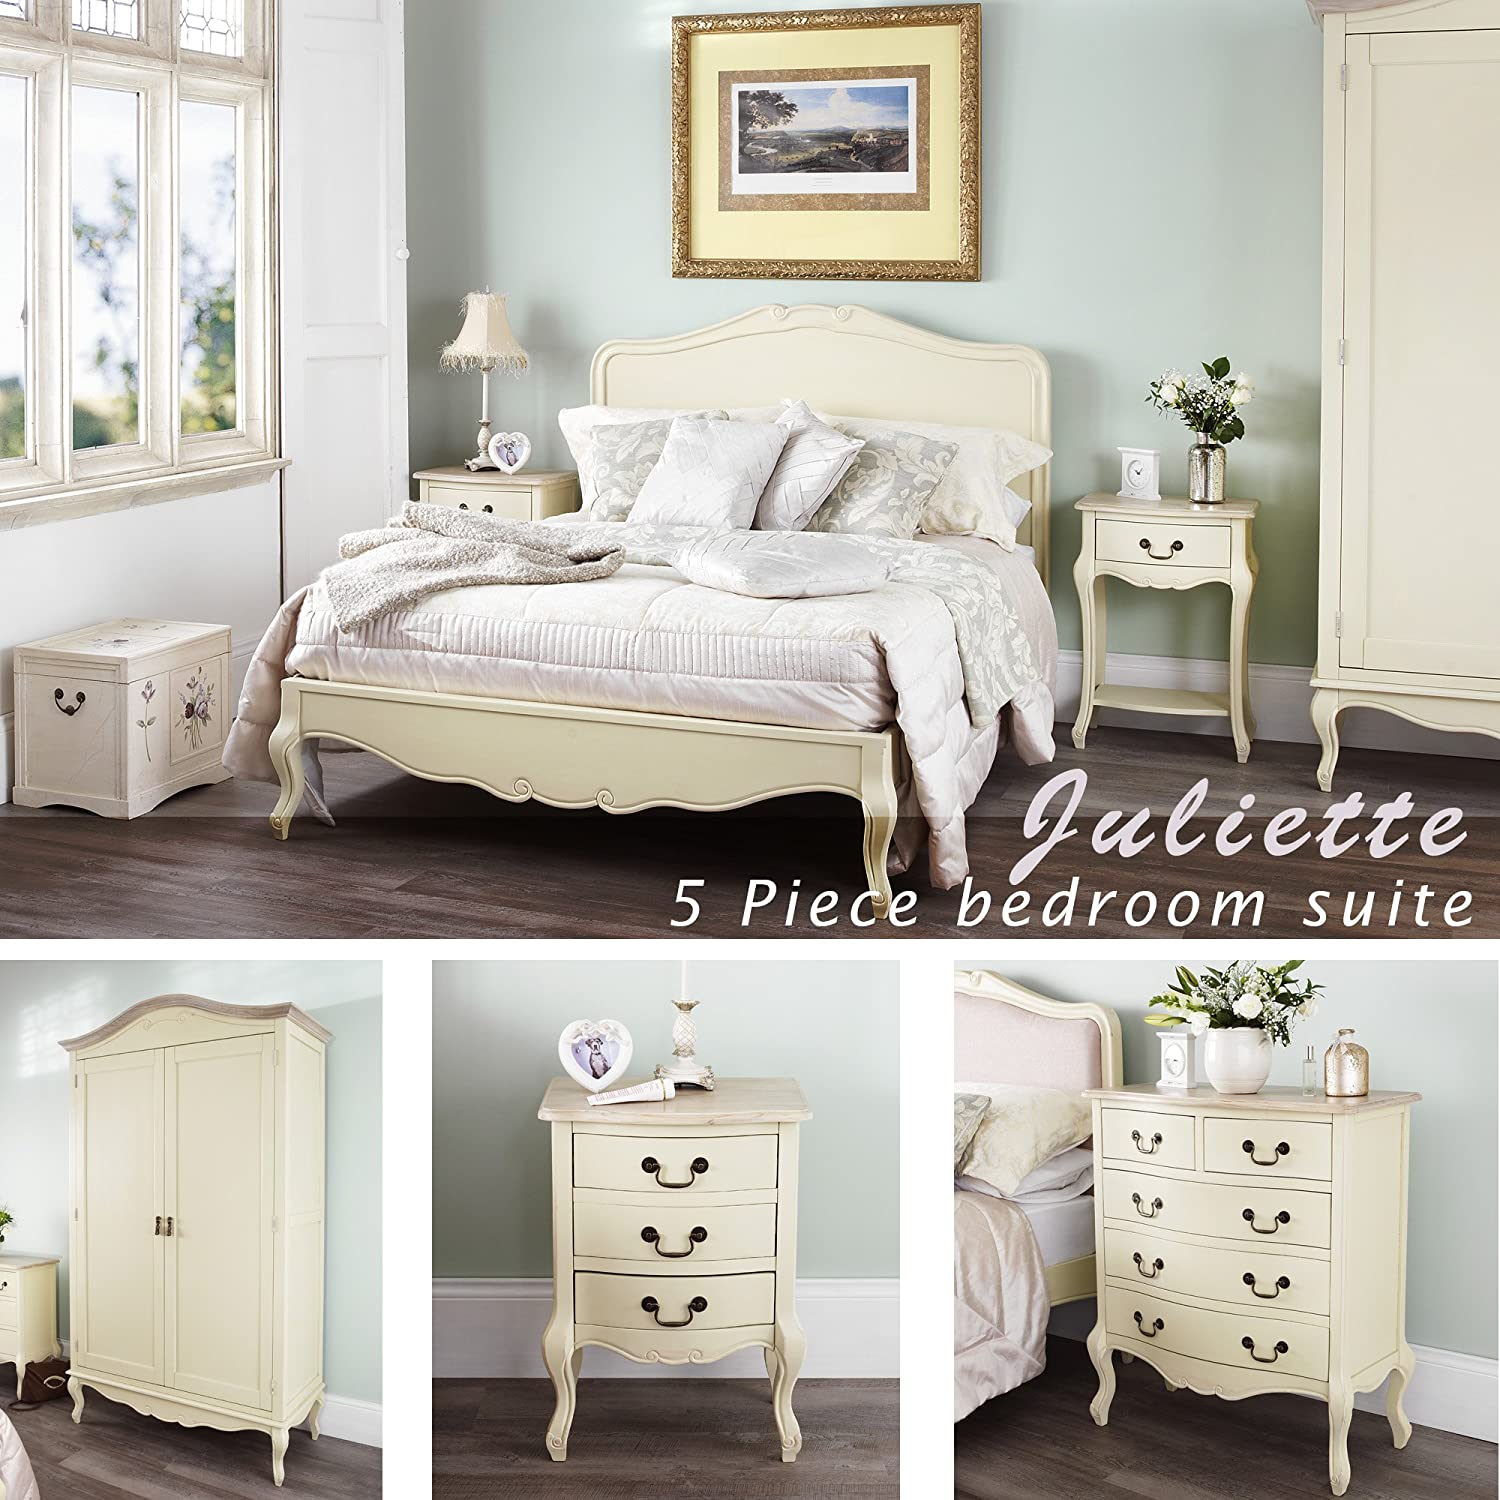 shabby chic furniture bedroom. Juliette Shabby Chic Champagne Double Bed 5pc Bedroom Furniture Set, FULLY ASSEMBLED: Amazon.co.uk: Kitchen \u0026 Home Amazon UK